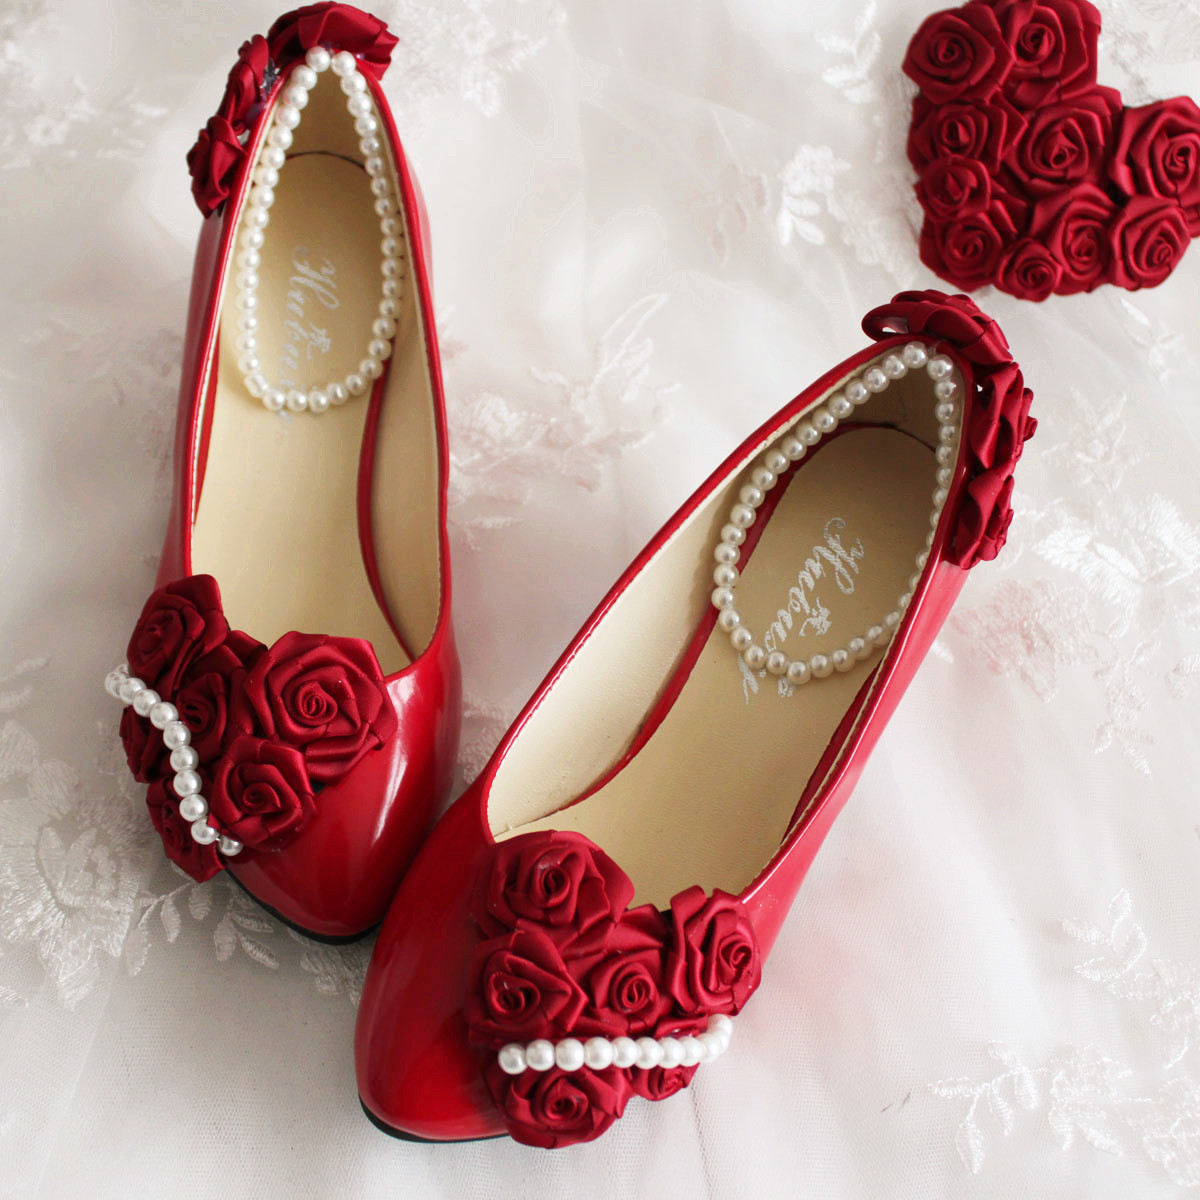 Aesthetic Bride Wedding Shoes Rose Pearl Wedding Dress Formal Dress Shoes Red Heart Beads Cheongsam Shoes Banquet Shoes On The Platform Shoe Ceramicshoes Halloween Aliexpress